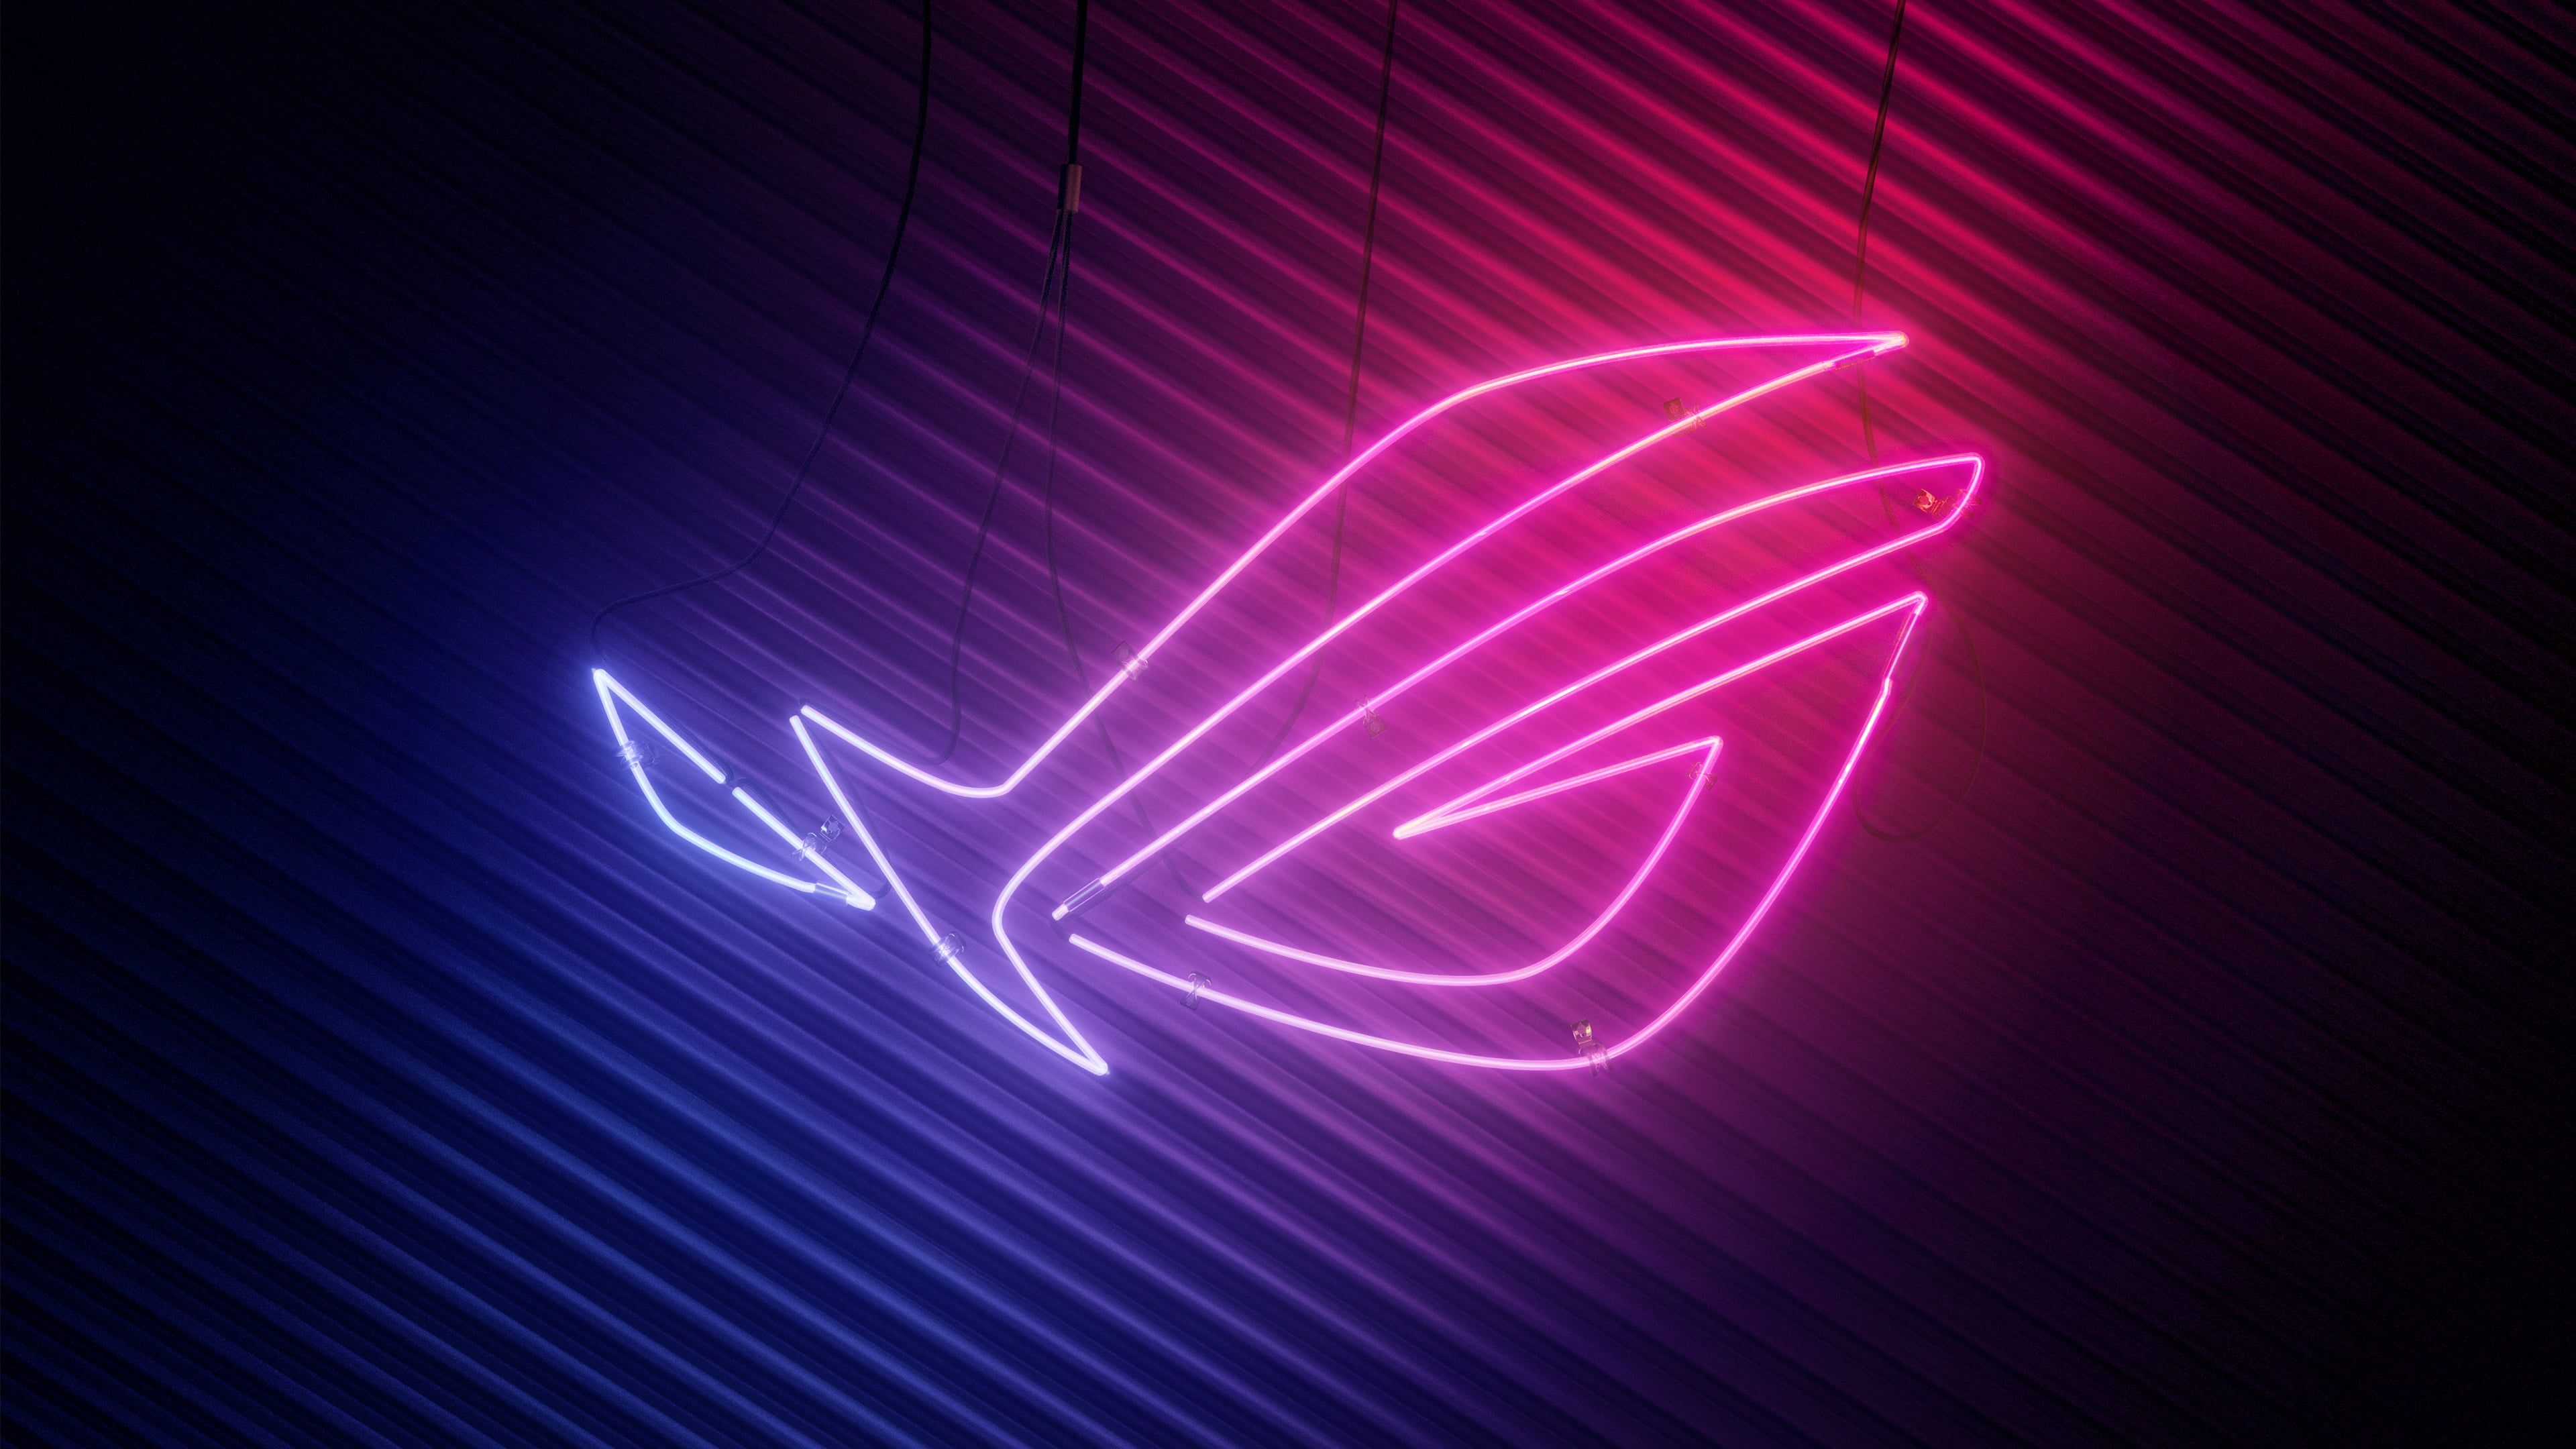 Technology Asus Rog 4k Wallpaper Hdwallpaper Desktop In 2020 Wallpaper Pc Pc Desktop Wallpaper Android Phone Wallpaper